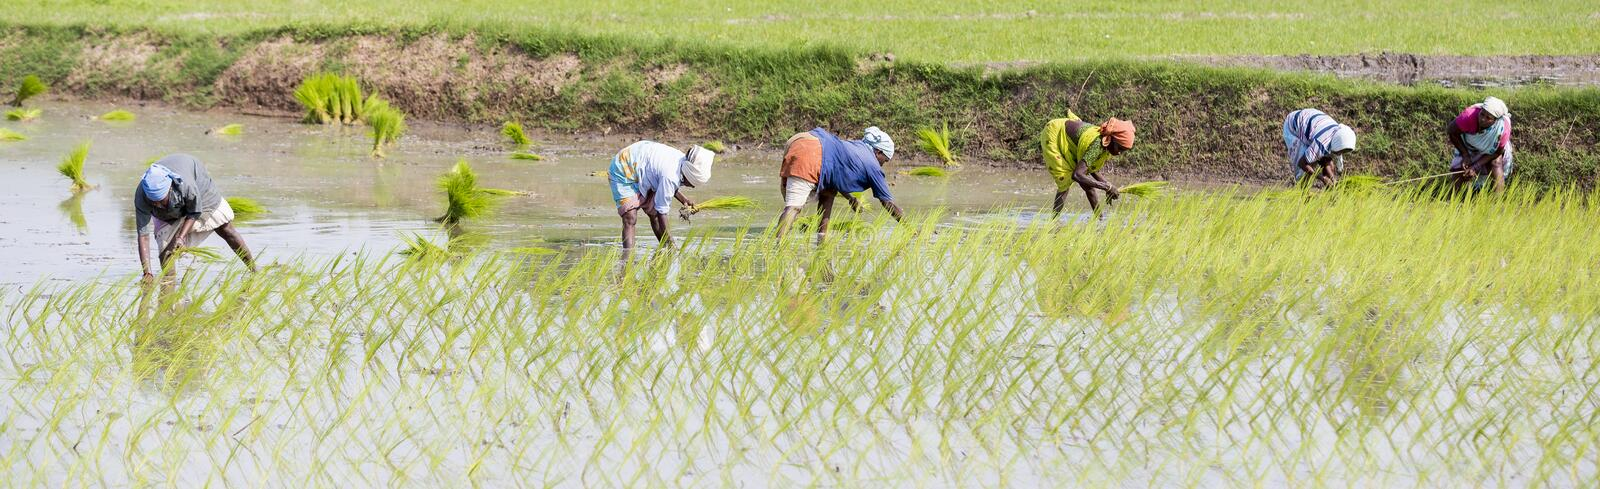 Unidentified group of women transplanted rice shoots they plant the new crop in the rice paddy stock images